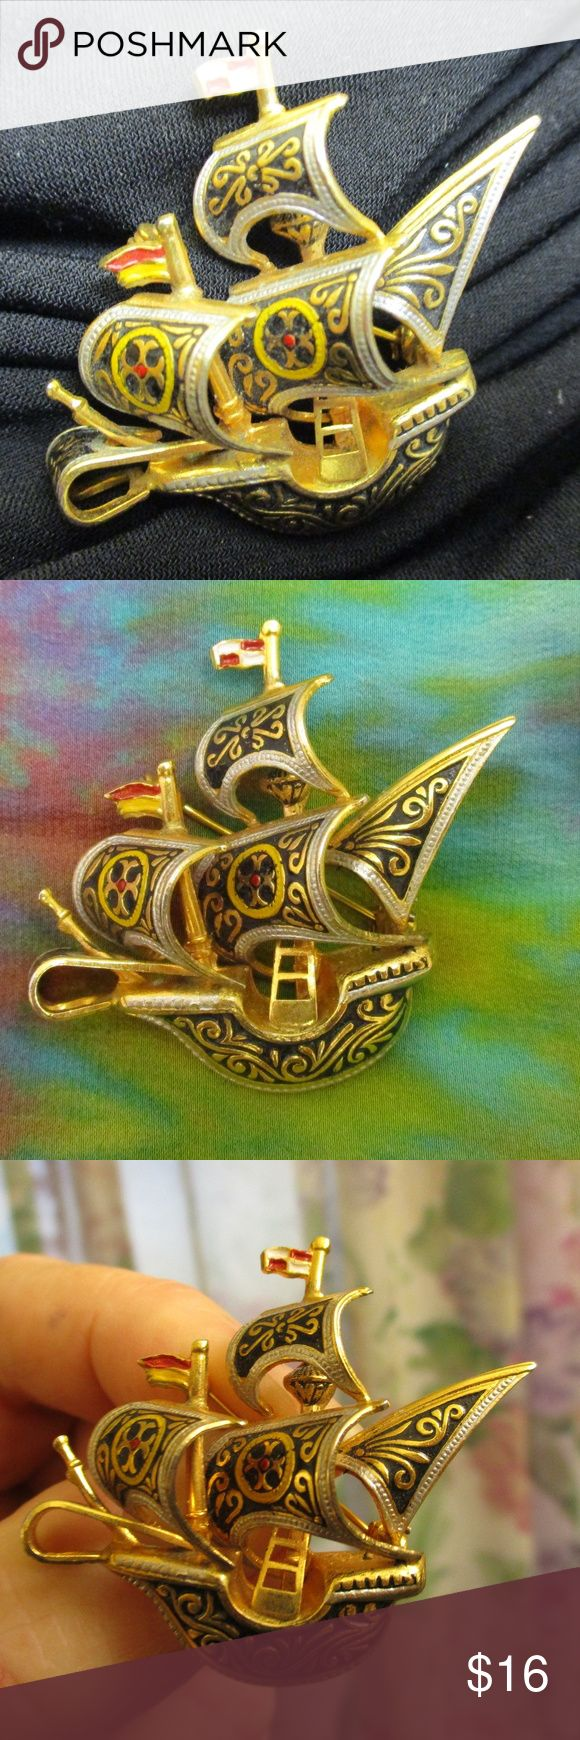 """Damascene Spanish Galleon Brooch Vintage Fascinating dimensional vintage gold plated Toledo Damascene Niello Spanish galleon brooch pin.  In pristine condition with sails and flags waving plus rigging and wooden upper deck rail visible.  Black Damascene inlay with yellow, red and white handpainted enamel on flags and sails. Damasquinado crafting at its best. Secure rollover clasp. 2"""" x 1 3/8"""" x 1/2"""" deep. EUC just polish to your satisfaction.  Own your own Spanish sailing ship!!  7.9g…"""